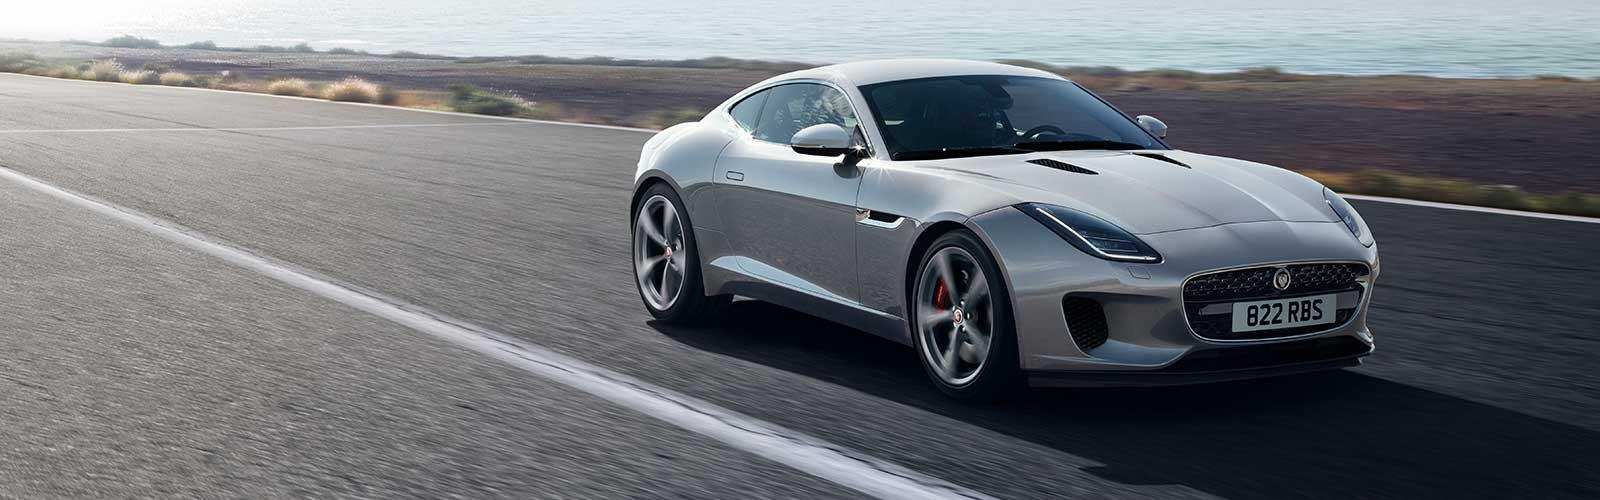 Black F-Type driving down country road.